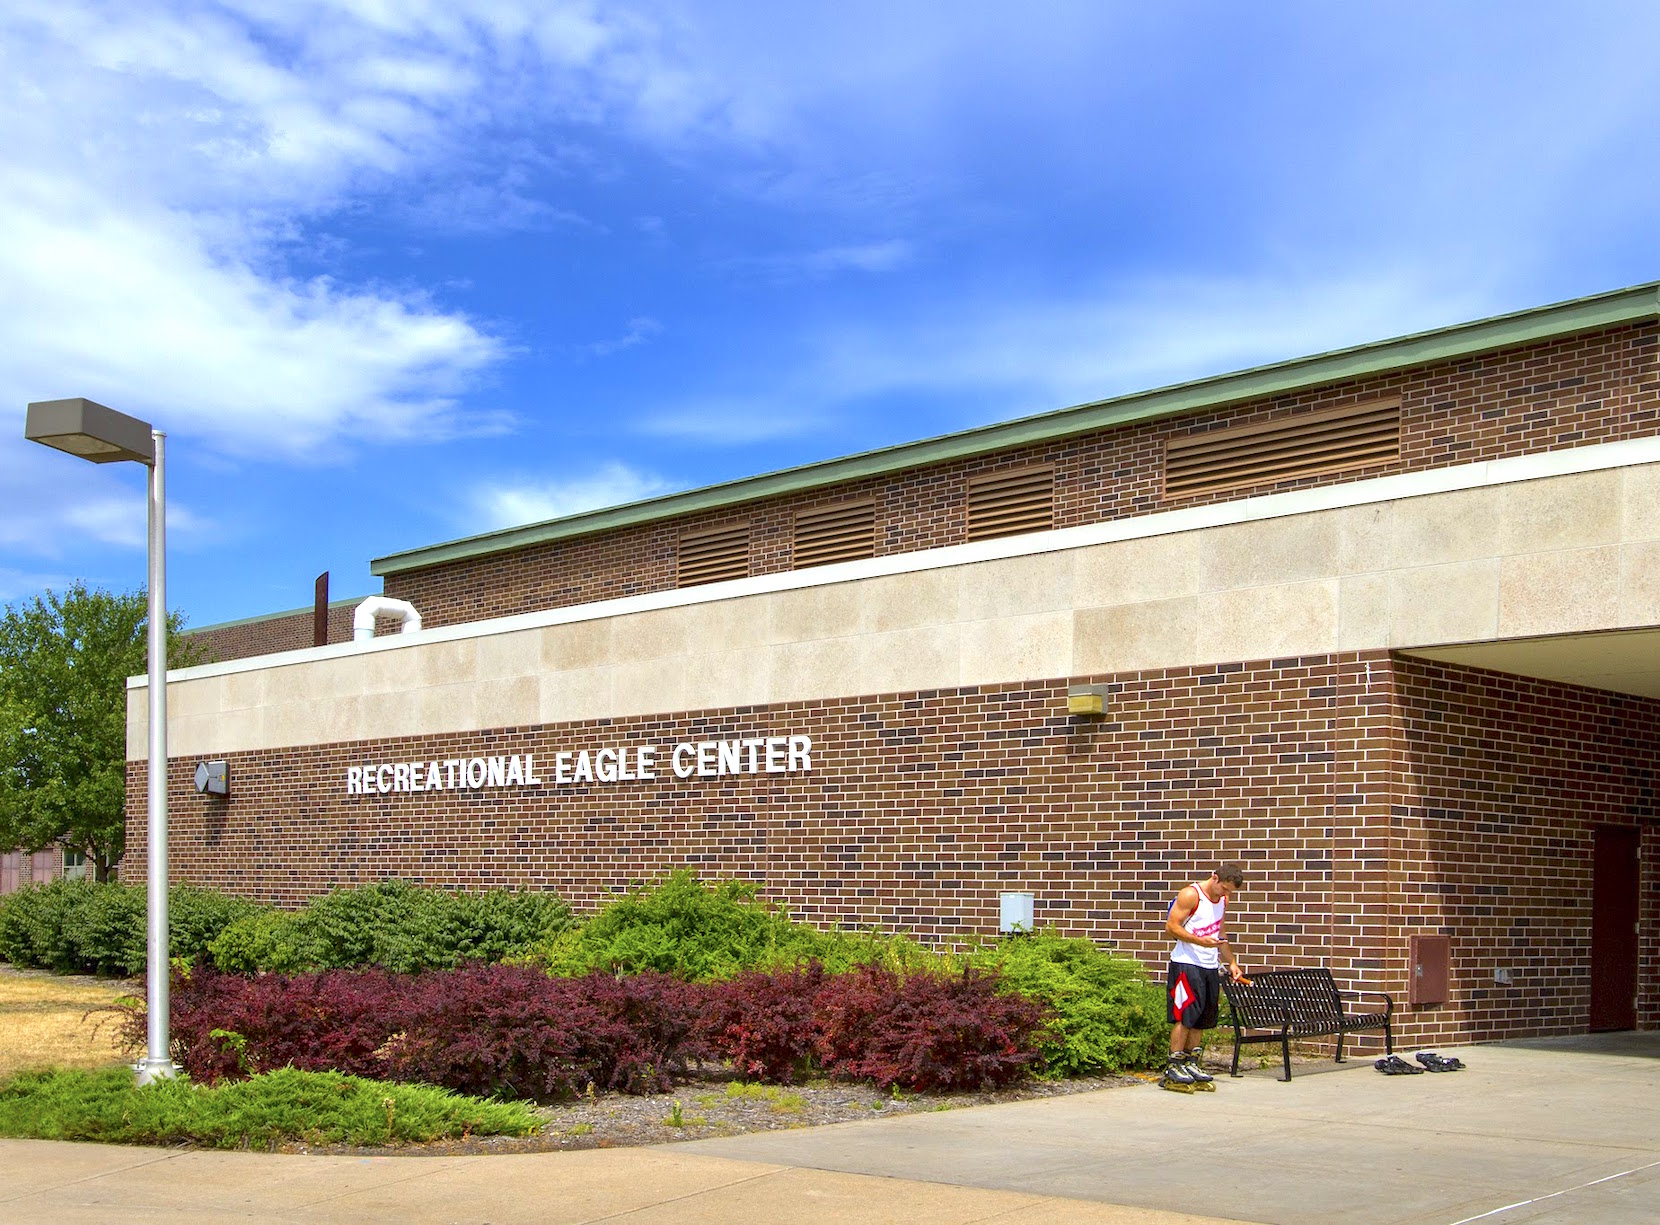 featured image of Recreational Eagle Center